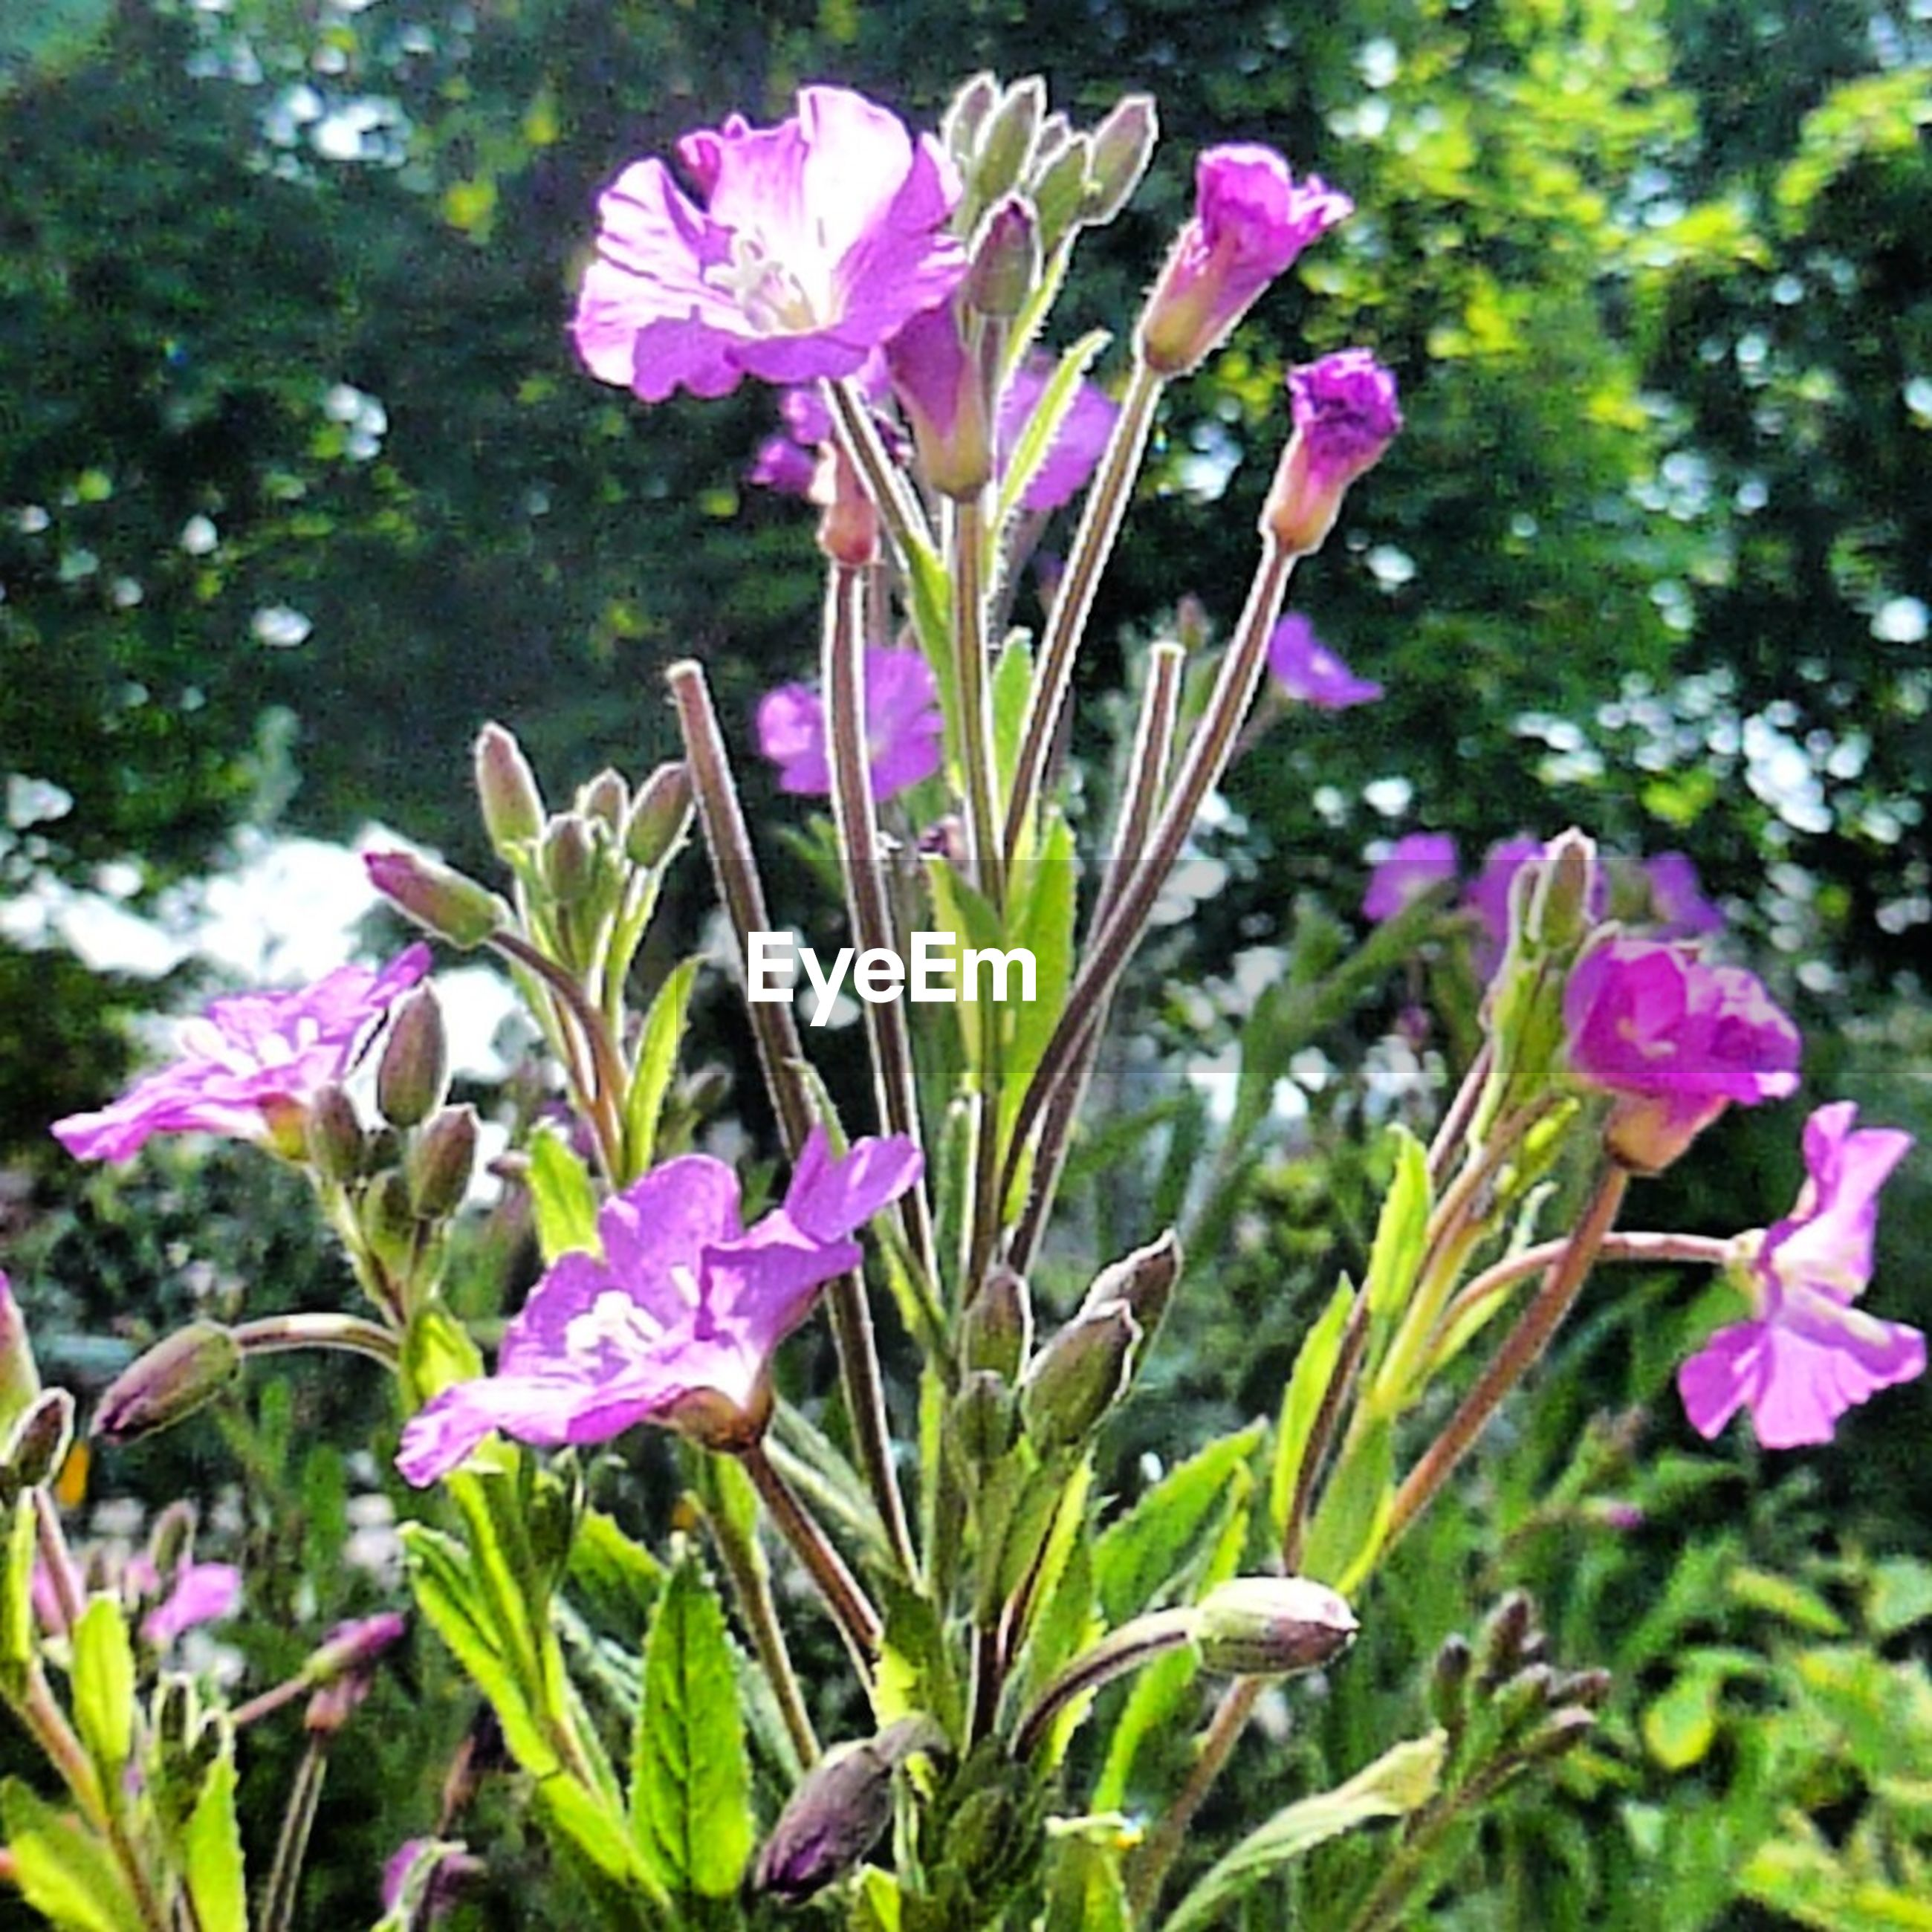 flower, freshness, fragility, growth, petal, beauty in nature, purple, flower head, plant, blooming, nature, pink color, focus on foreground, stem, close-up, in bloom, leaf, blossom, green color, springtime